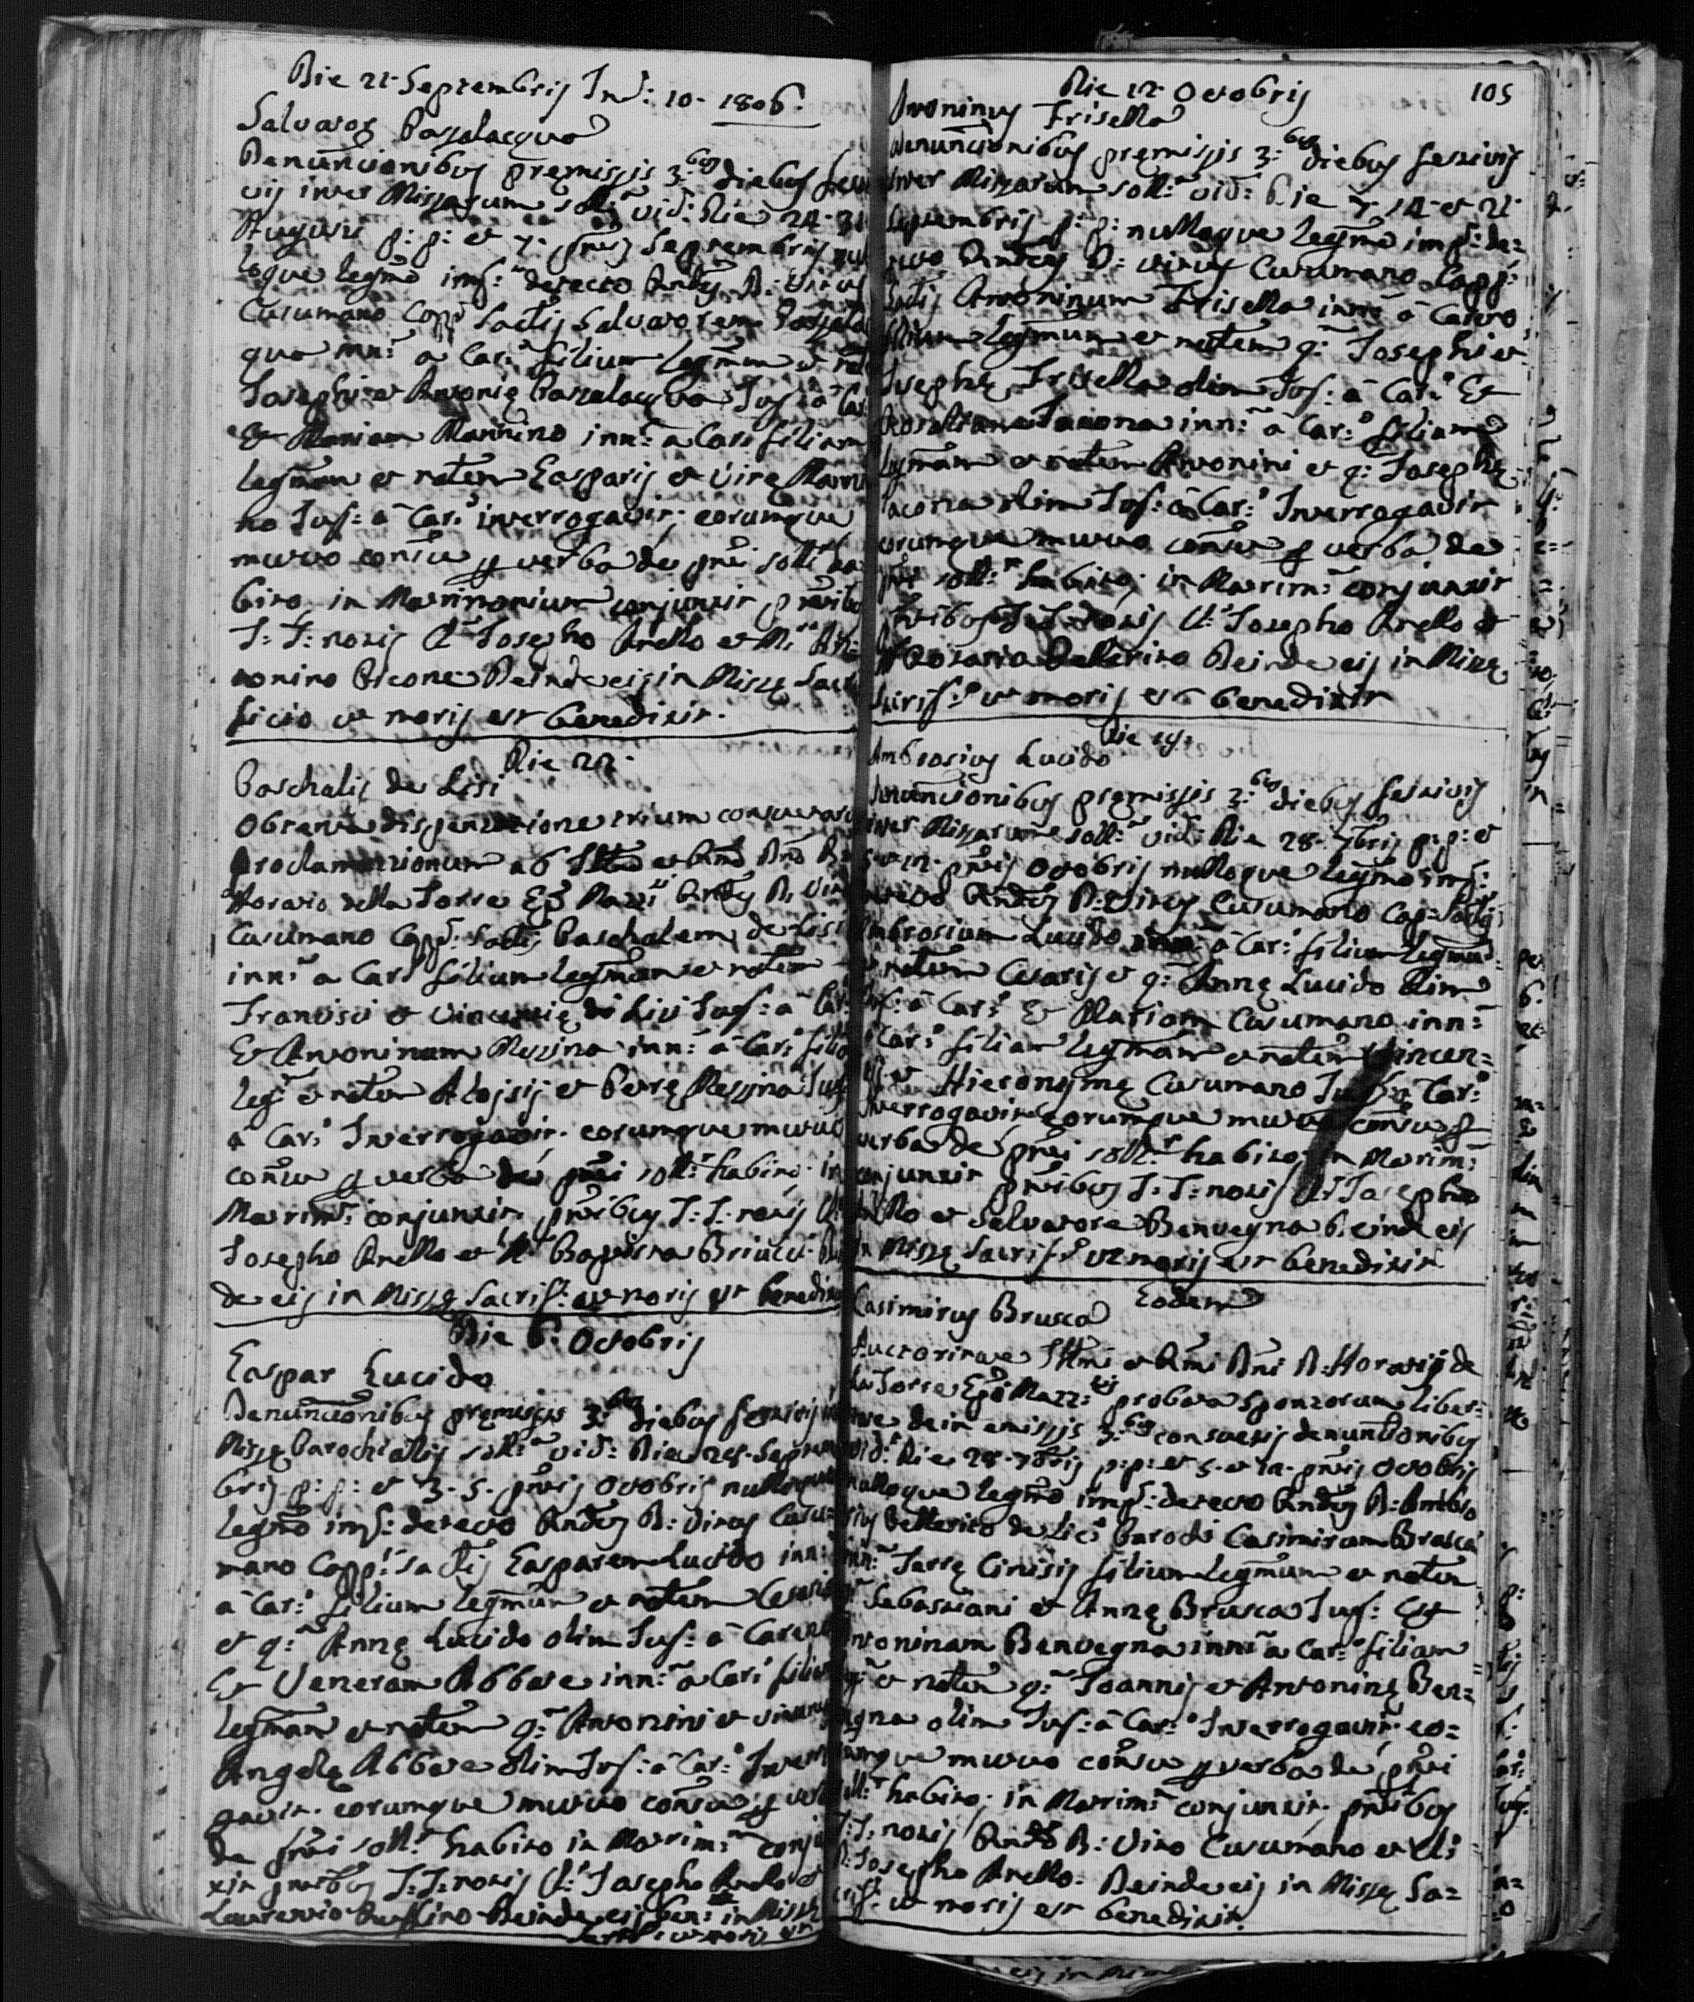 Casimiro Brusca - 1806 Italy Marriage record.jpg